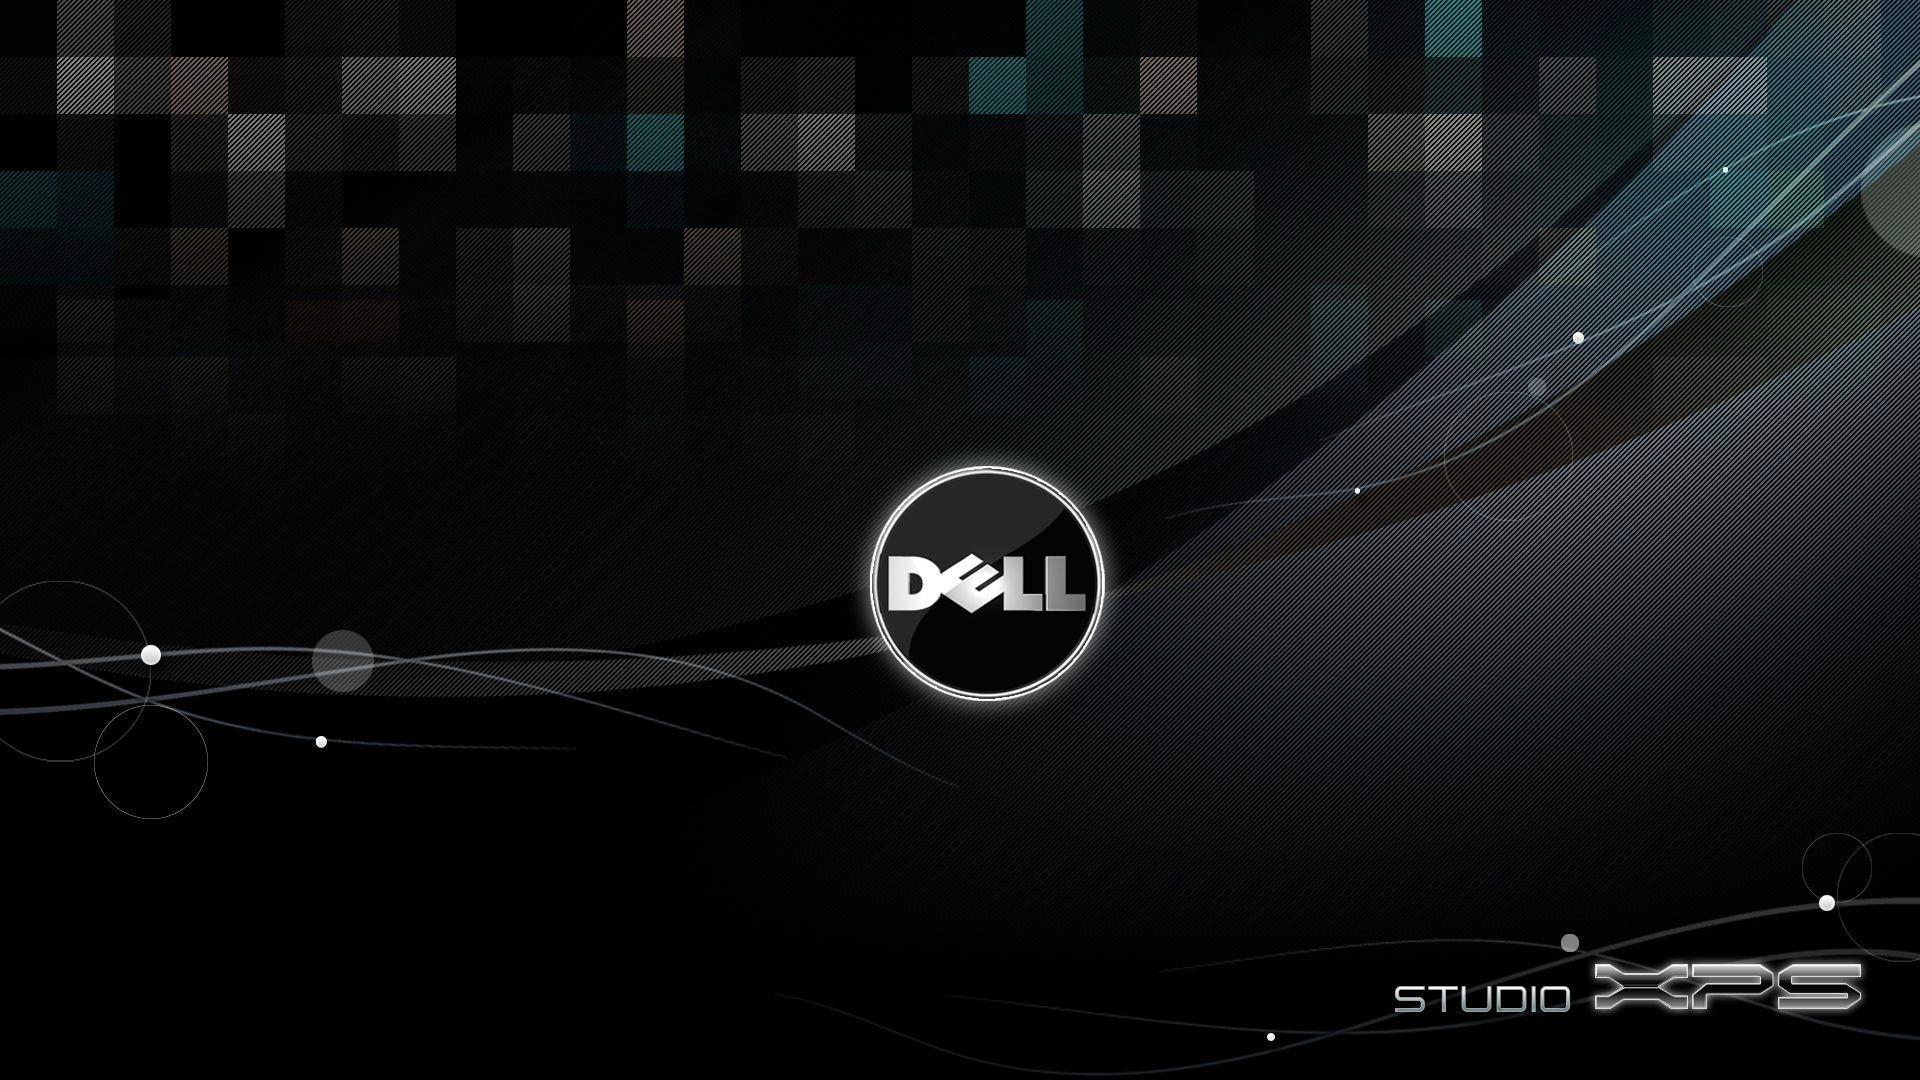 Dell wallpaper windows 10 72 images for Where to get wallpaper